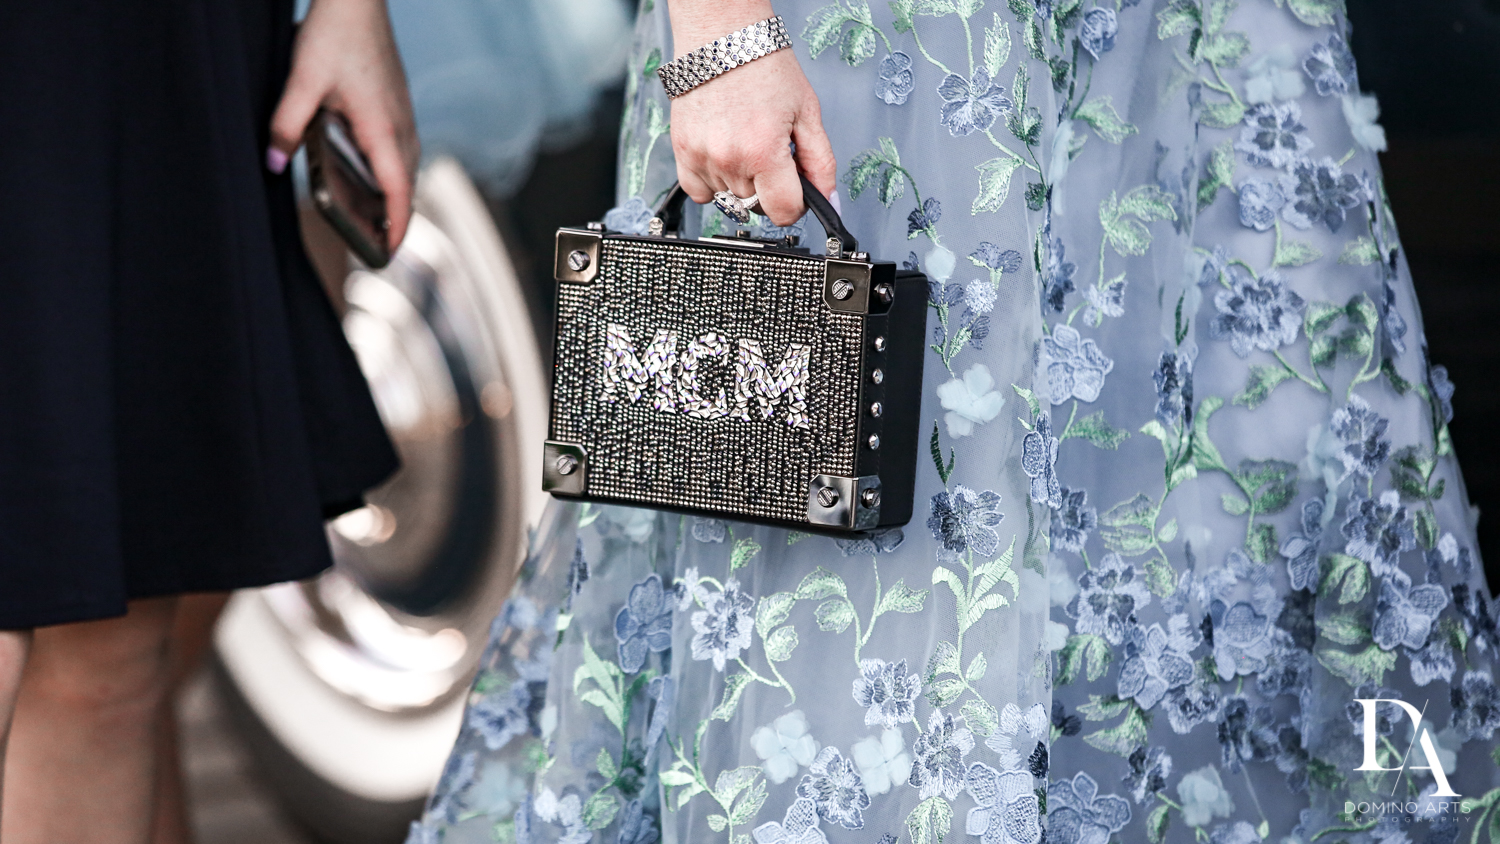 purse details at Exotic Moroccan BNai Mitzvah at Lavan by Domino Arts Photography